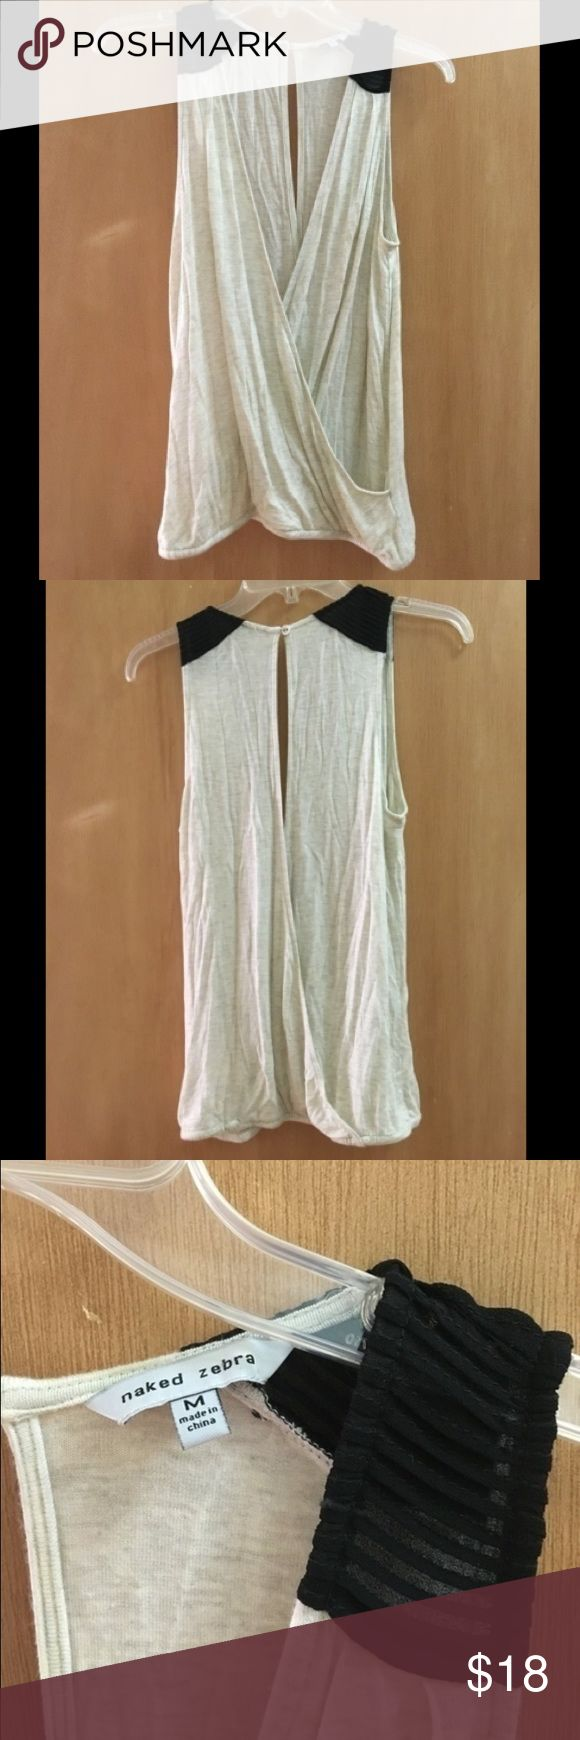 Naked zebra cream deep v tank top Very cute on, elastic at the waist, deep v all the way to the hem in front and back. The top looks really cute on with a black bandeau. Message with questions. Worn at most twice. No swaps. #nakedzebra #black #cream #deepv #tank Naked Zebra Tops Tank Tops